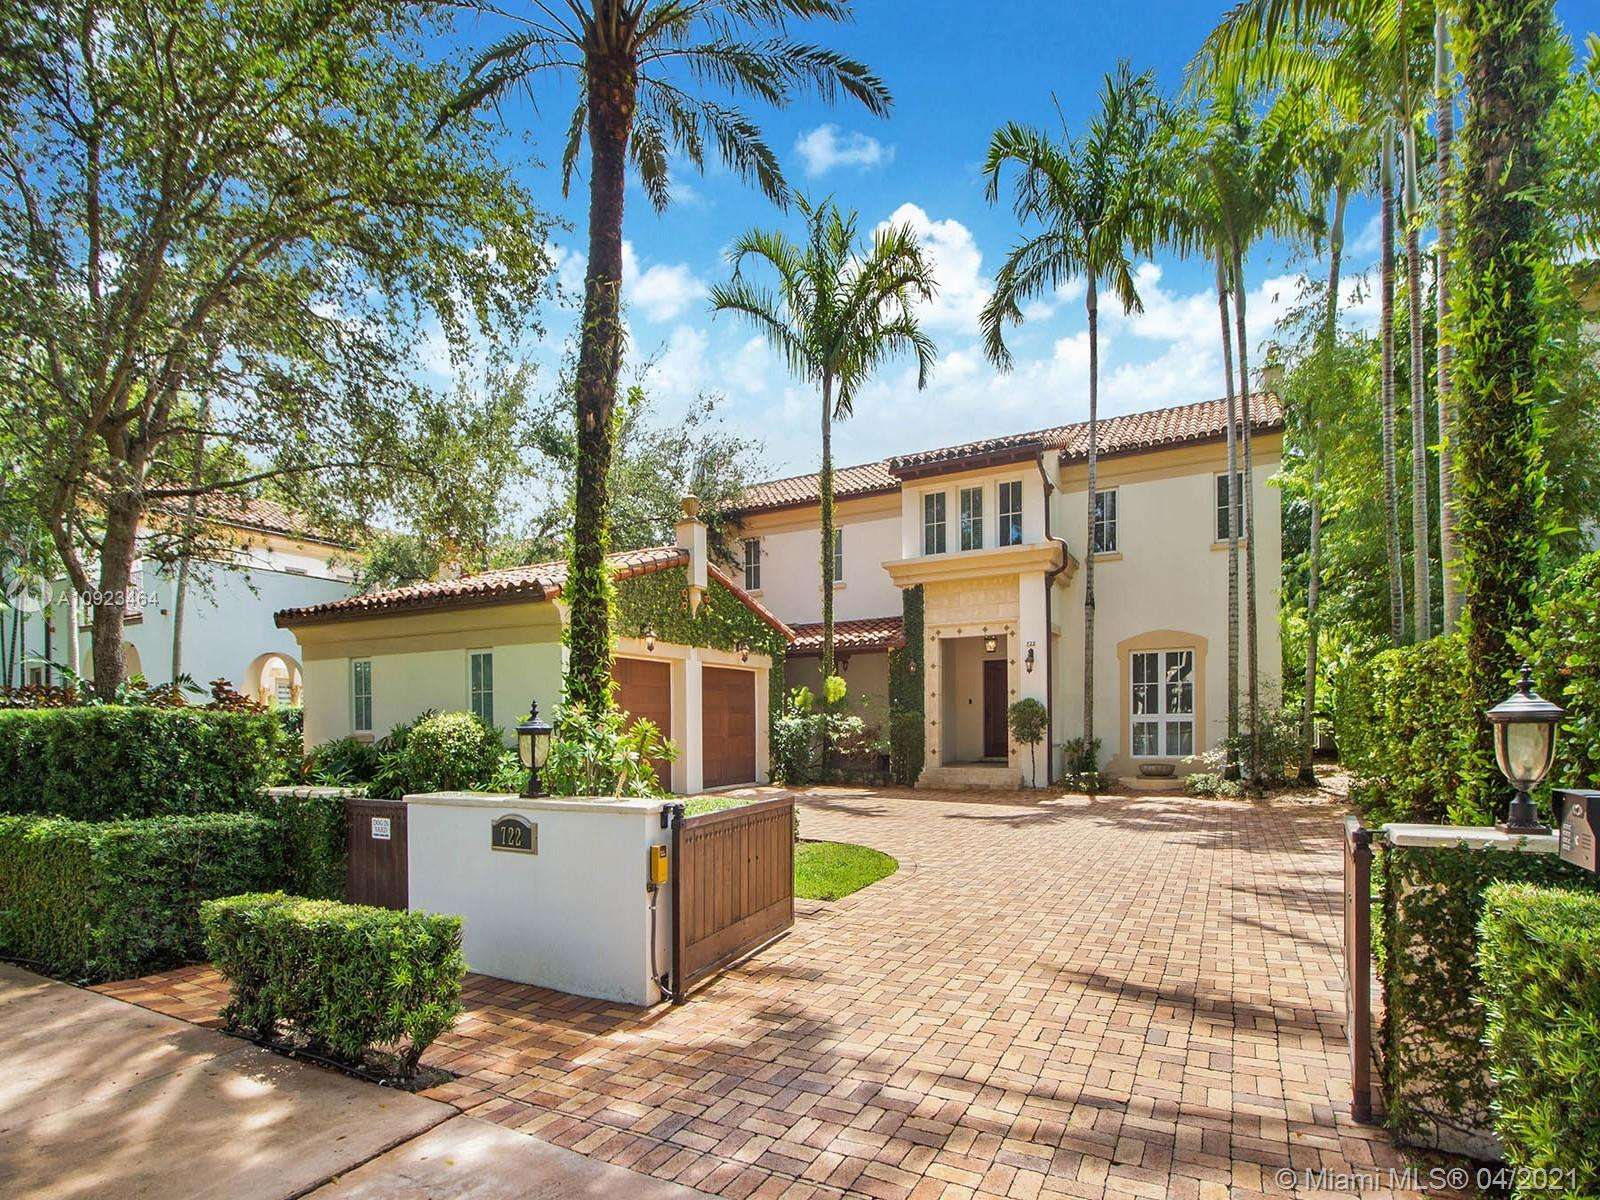 This Spanish manor in Coral Gables is utter perfection. Located in Casa Sevillanas Village surrounded by sidewalks & green treescapes you will love living an urban lifestyle in the City Beautiful. Highest quality with custom finishes & attention to detail including hardwood & marble floors, handmade cabinetry, finest millwork, fireplace & elevator. Stunning arched doorways surround the flexible floor plan leading to dining, living & family rooms. Three bedrooms, open den & laundry room are all on the same floor. Retreat to your master & unwind in the 5 star bathroom with oversized closets. En suite bathrooms for each bedroom. Covered loggia right off the kitchen makes it easy to dine alfresco & watch the kids swim laps. Coveted location just minutes to MIA, Miracle Mile, Merrick Park & UM.